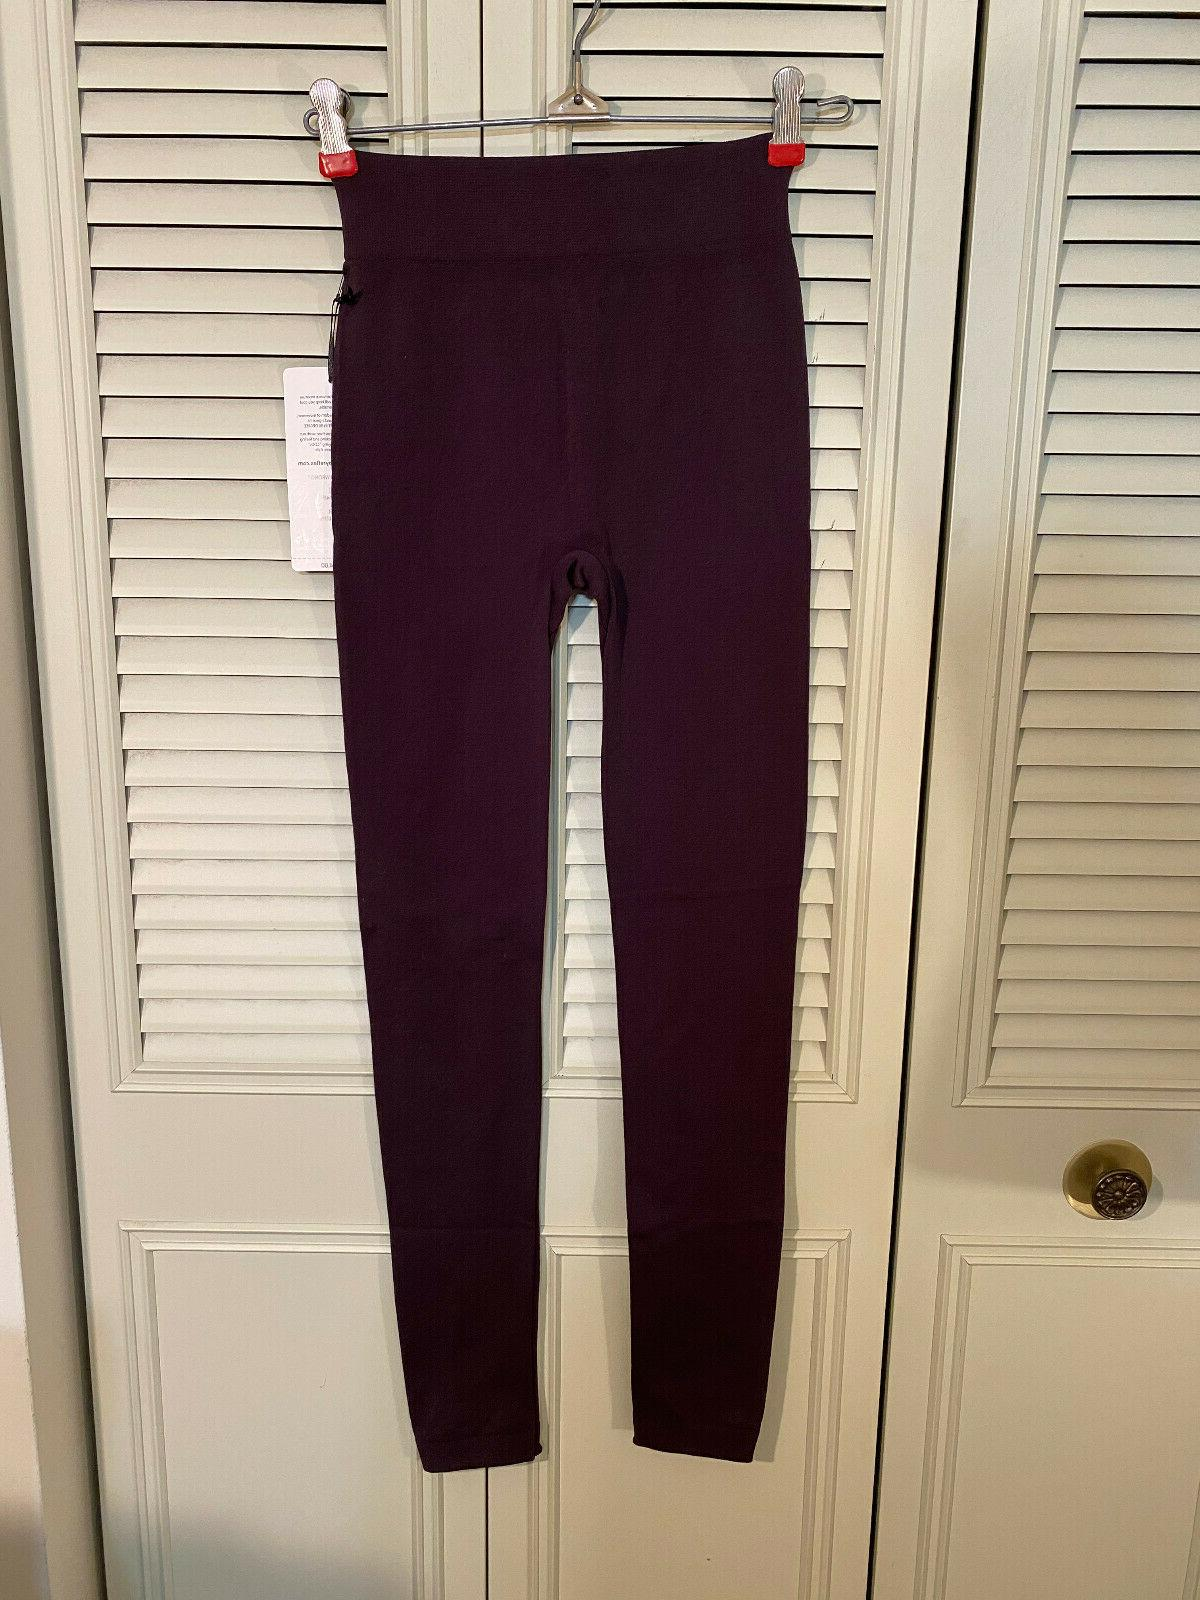 90 degree by womens workout leggings purple